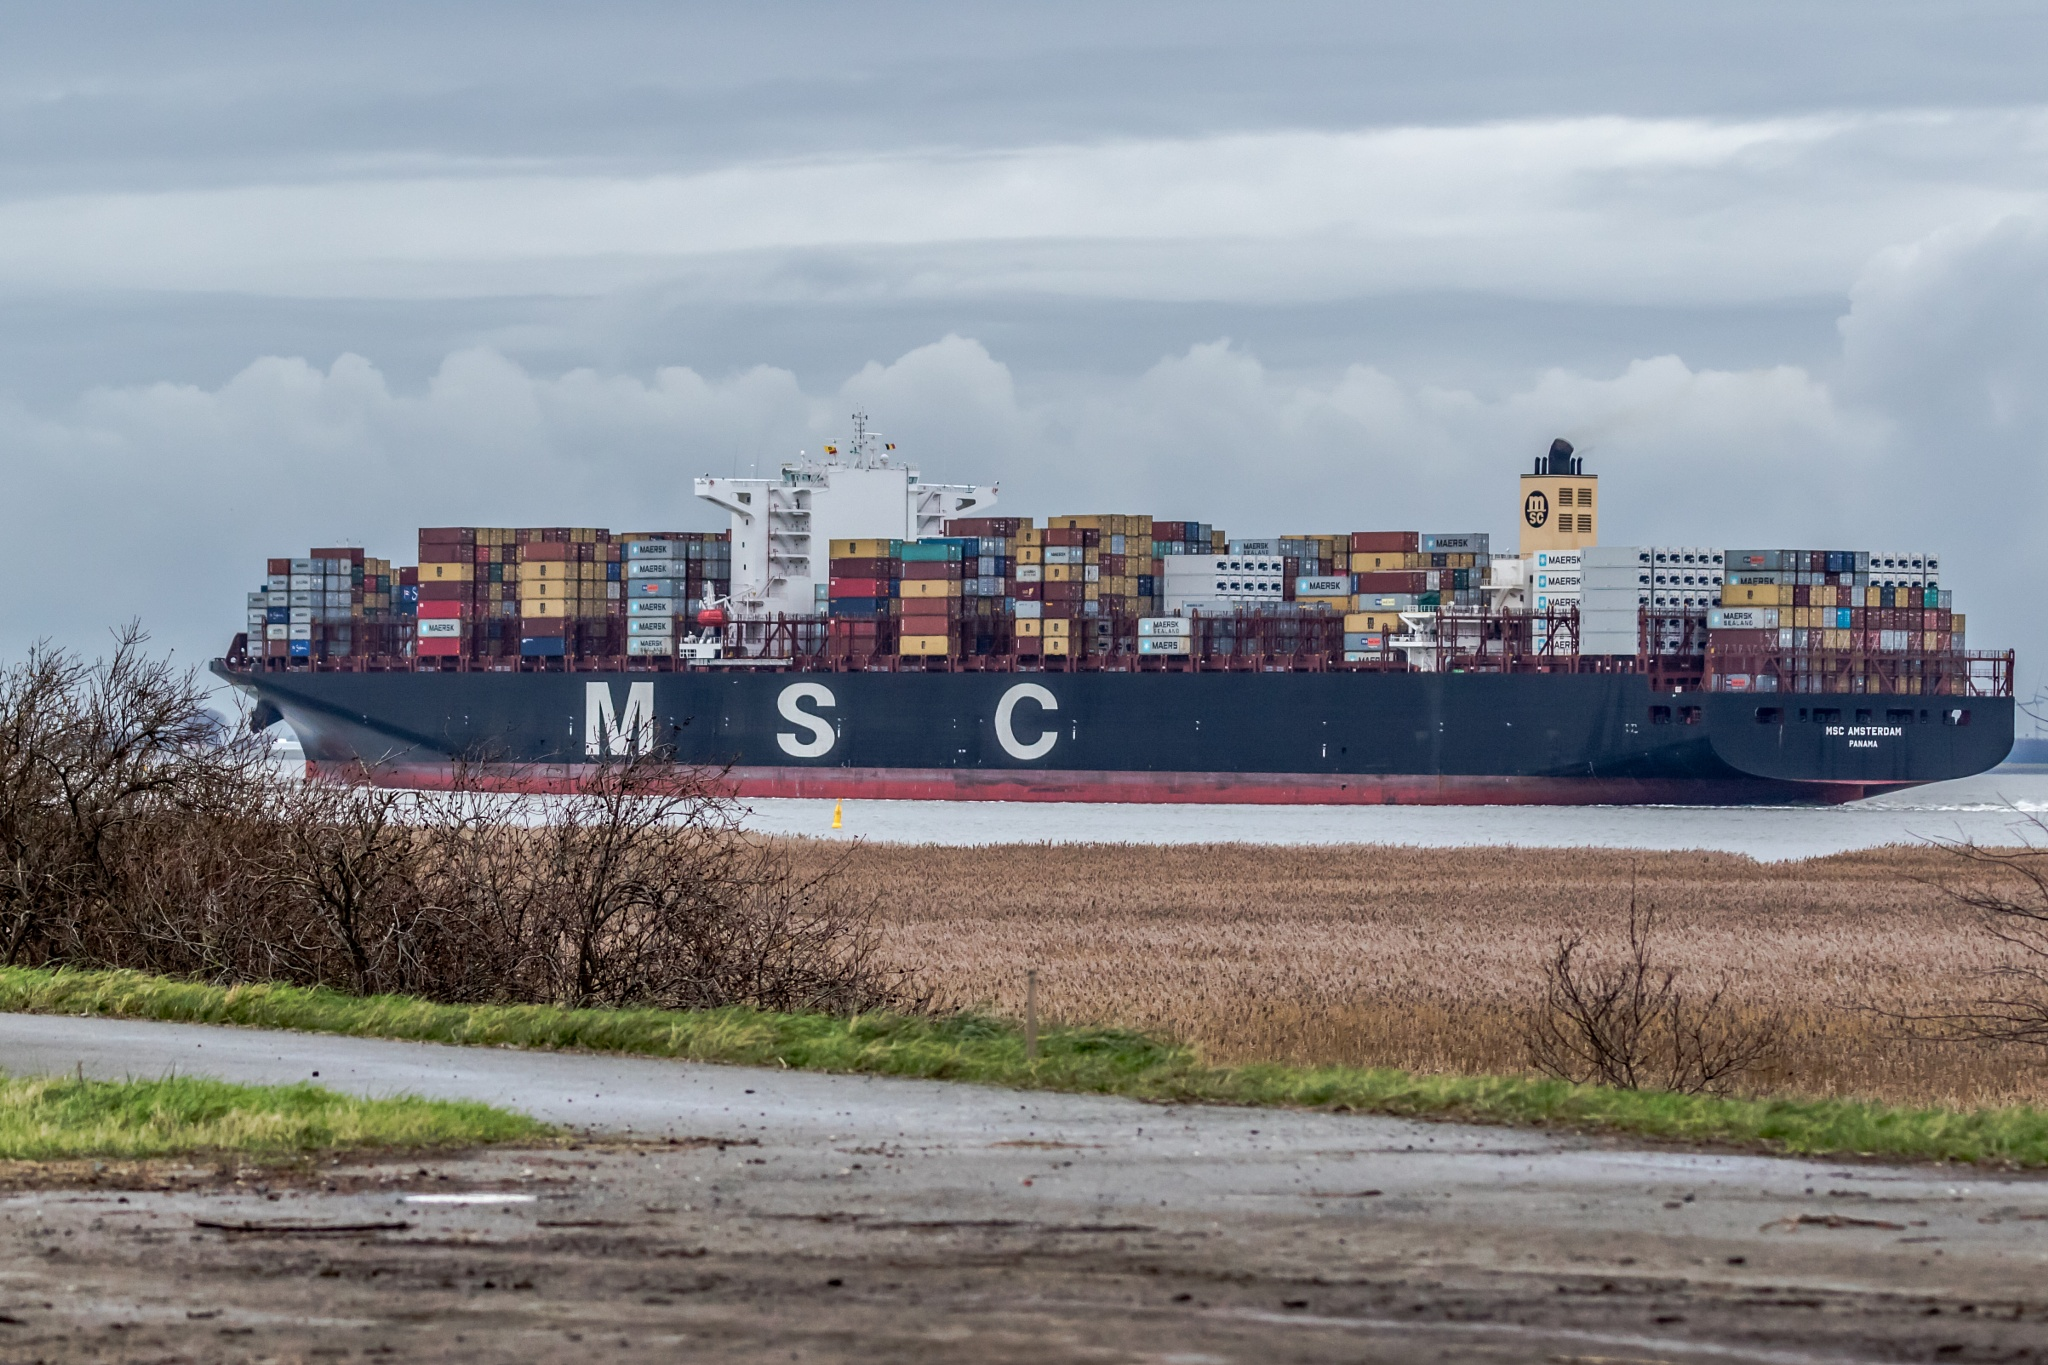 container ship by Ronny Andries